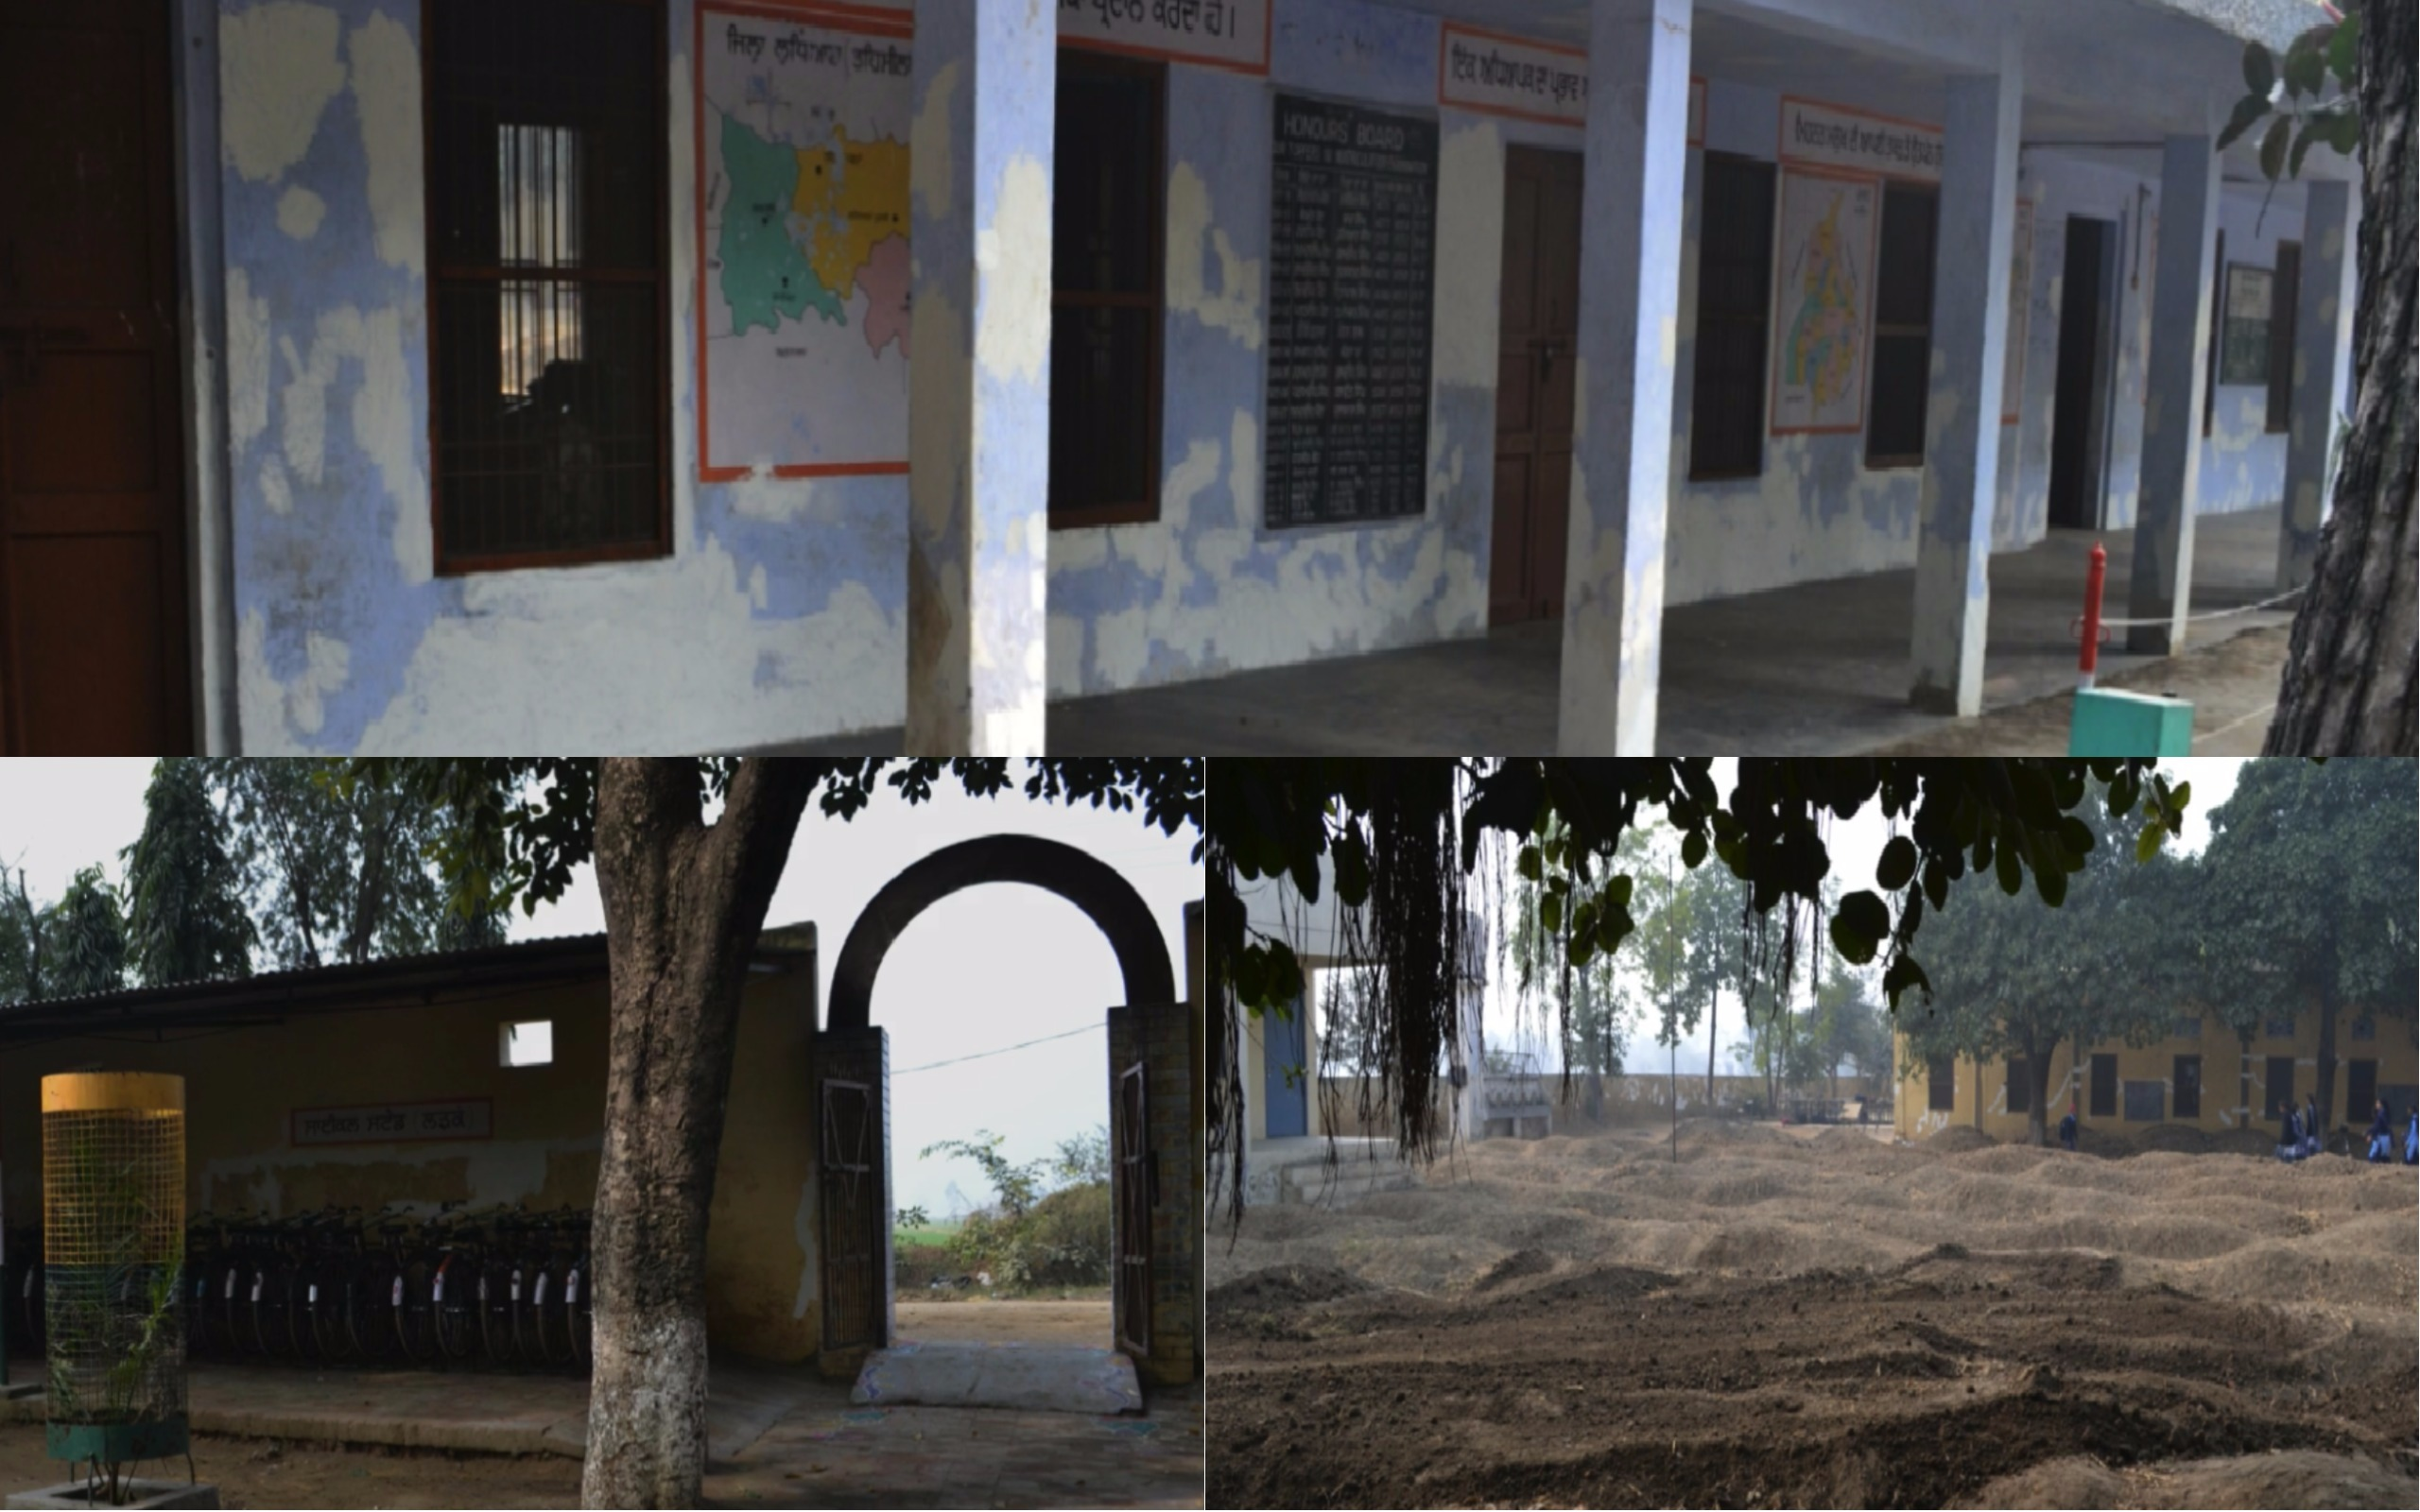 Ghudani Kalan village school was grappling with various problems including flooding of the main assembly area during rainy season.